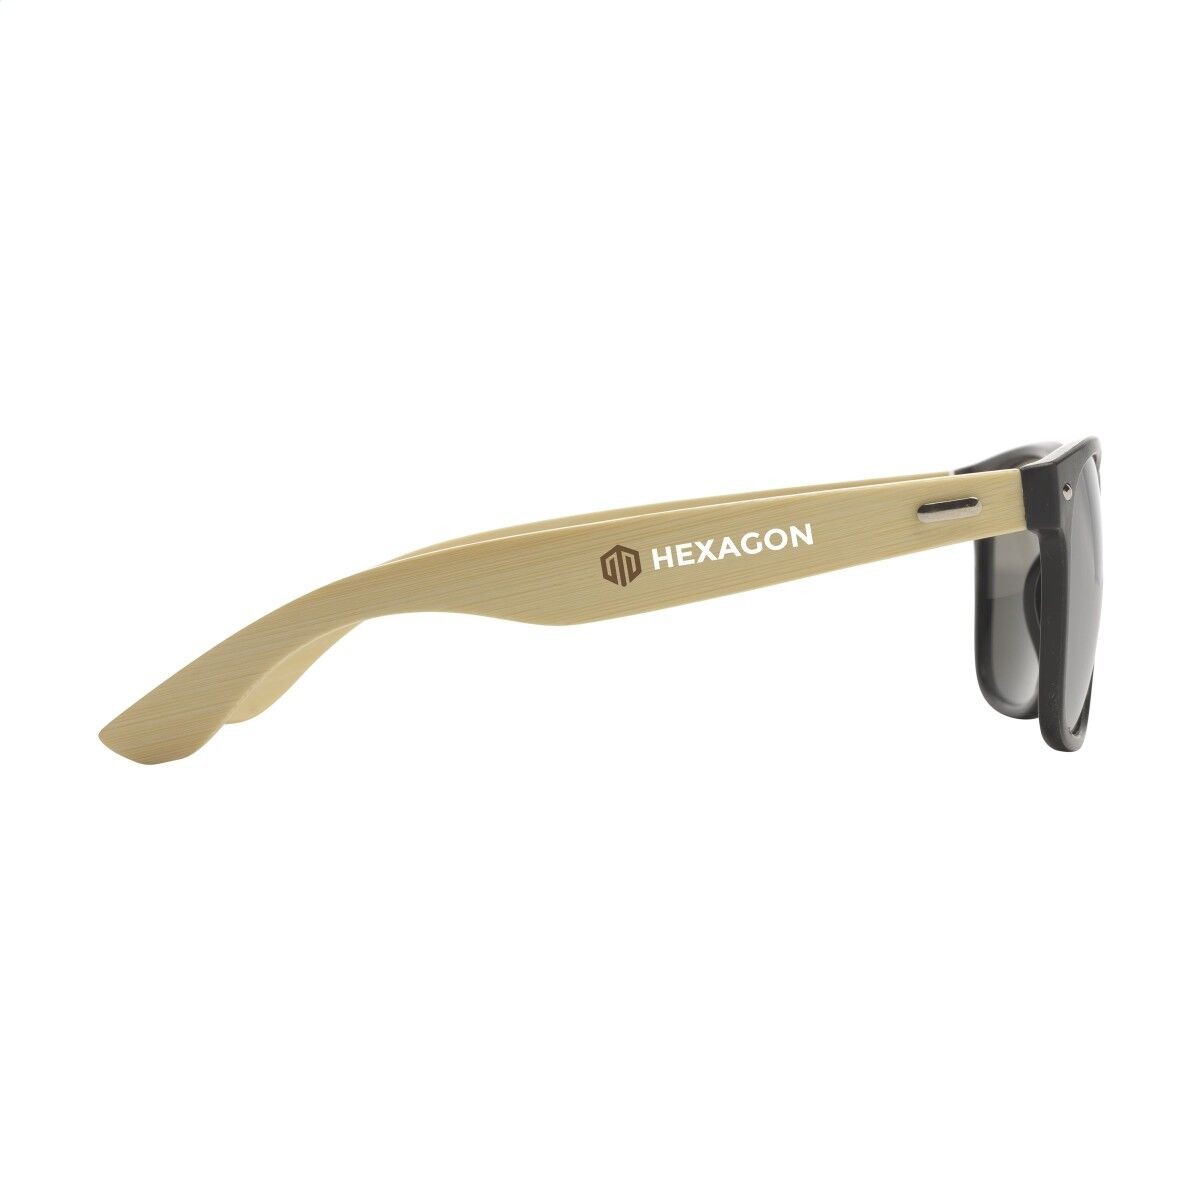 Bamboo Mix Sunglasses printed on arm